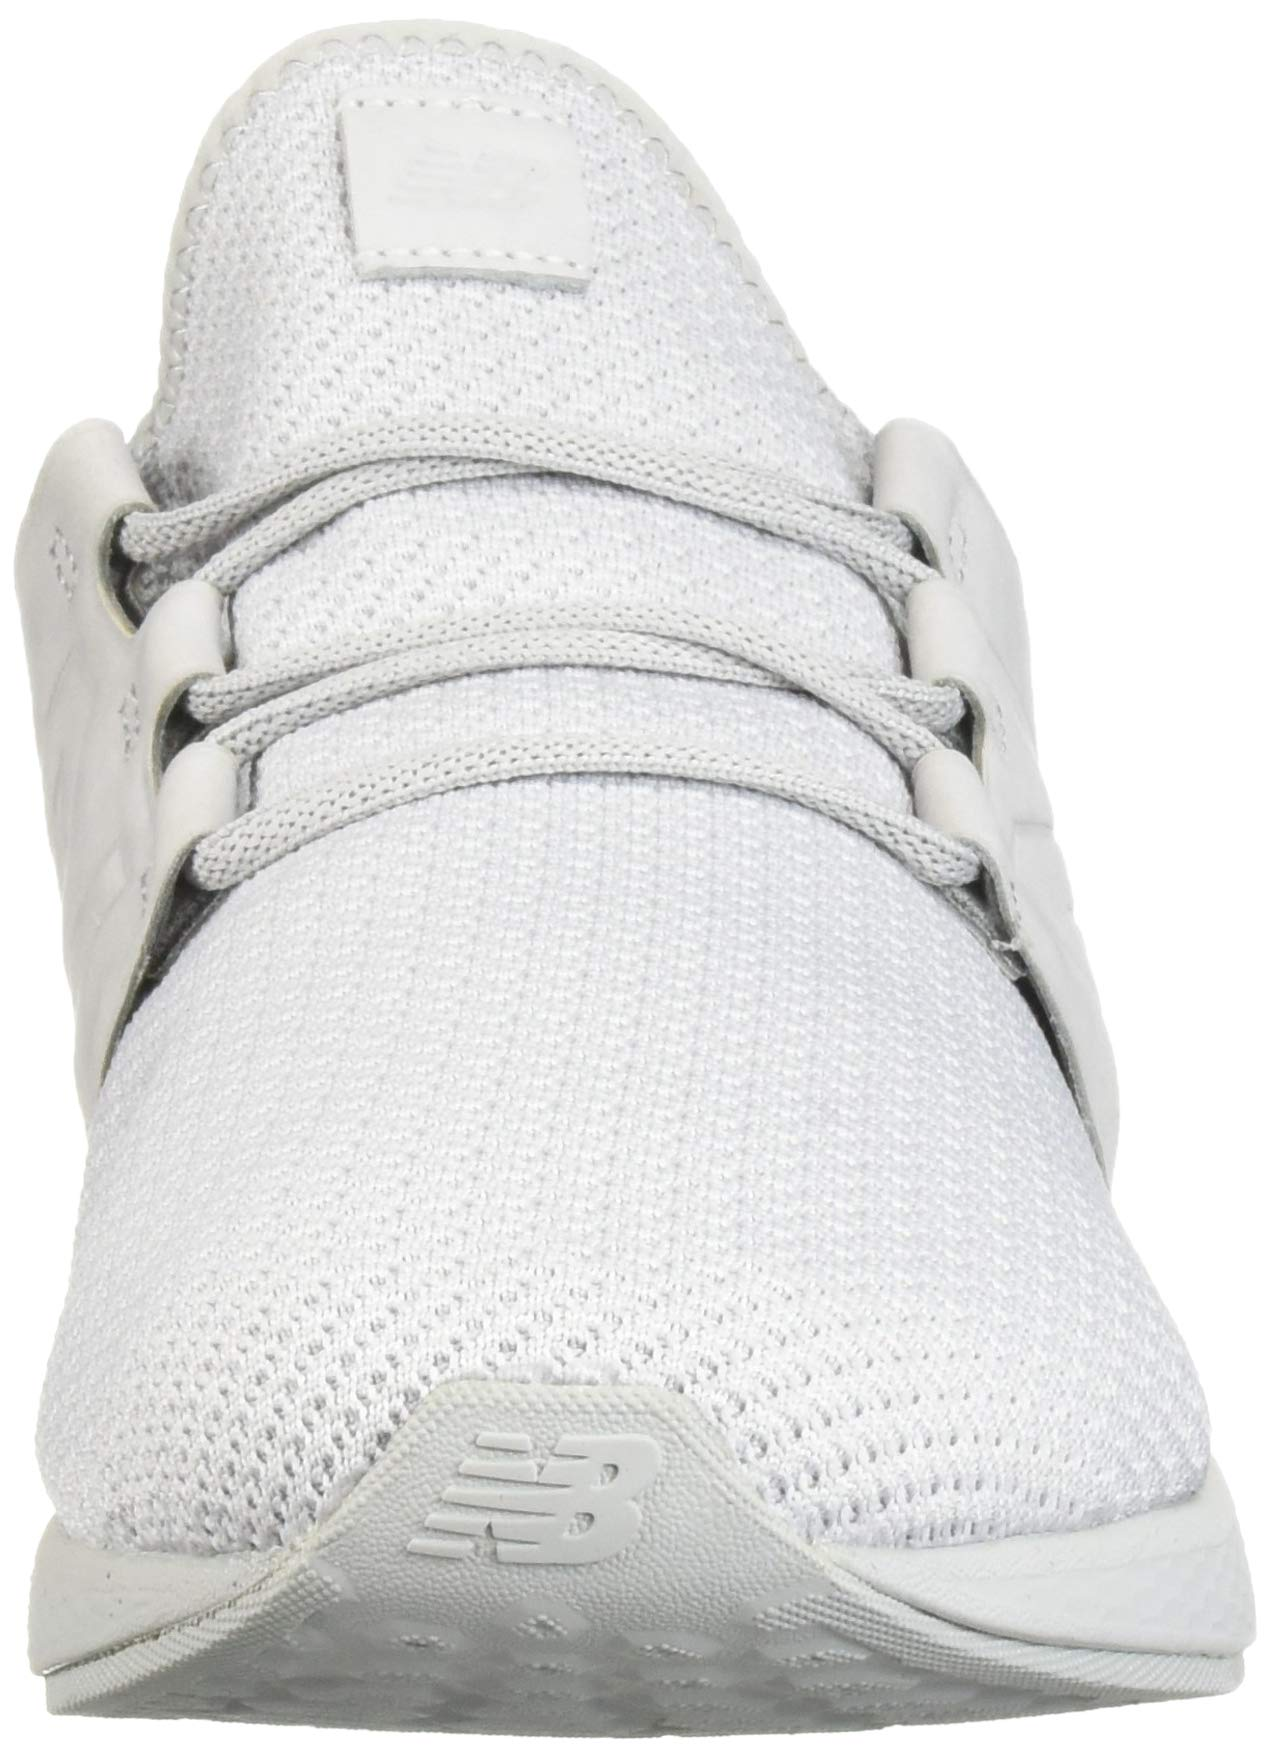 New Balance Men's Cruz V2 Fresh Foam Running Shoe, arctic fox/white/nubuck, 7 D US by New Balance (Image #4)